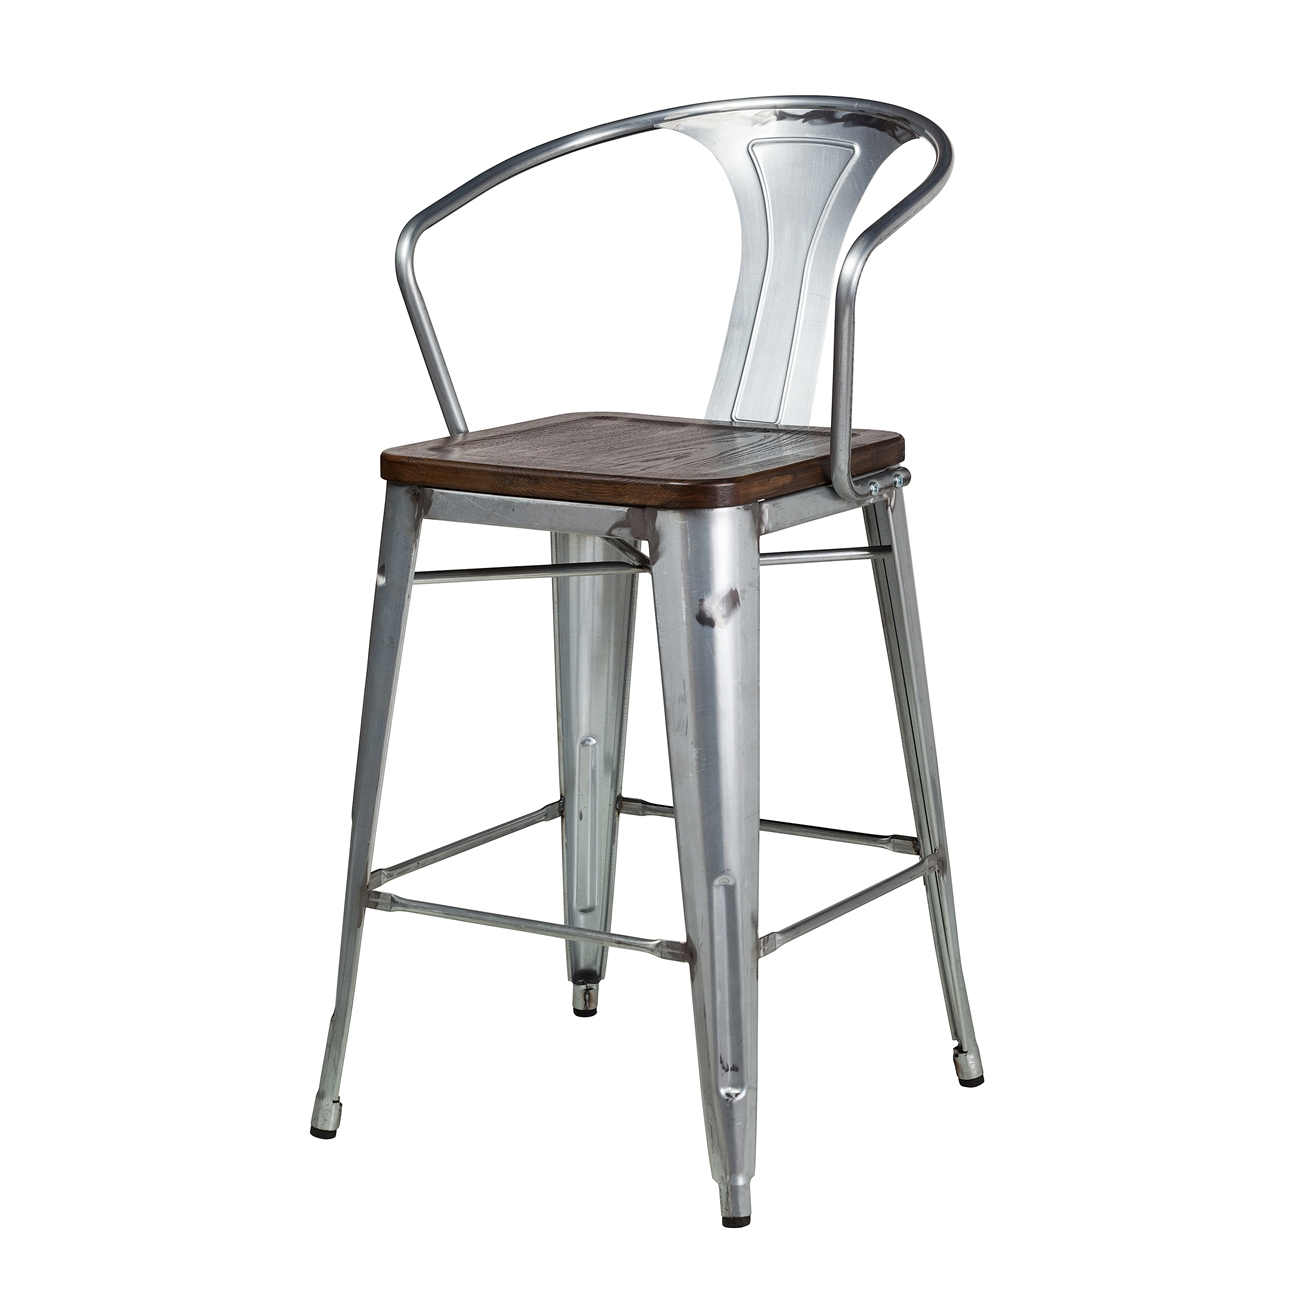 Outstanding Bastille Counter Stool With Walnut Seat Squirreltailoven Fun Painted Chair Ideas Images Squirreltailovenorg